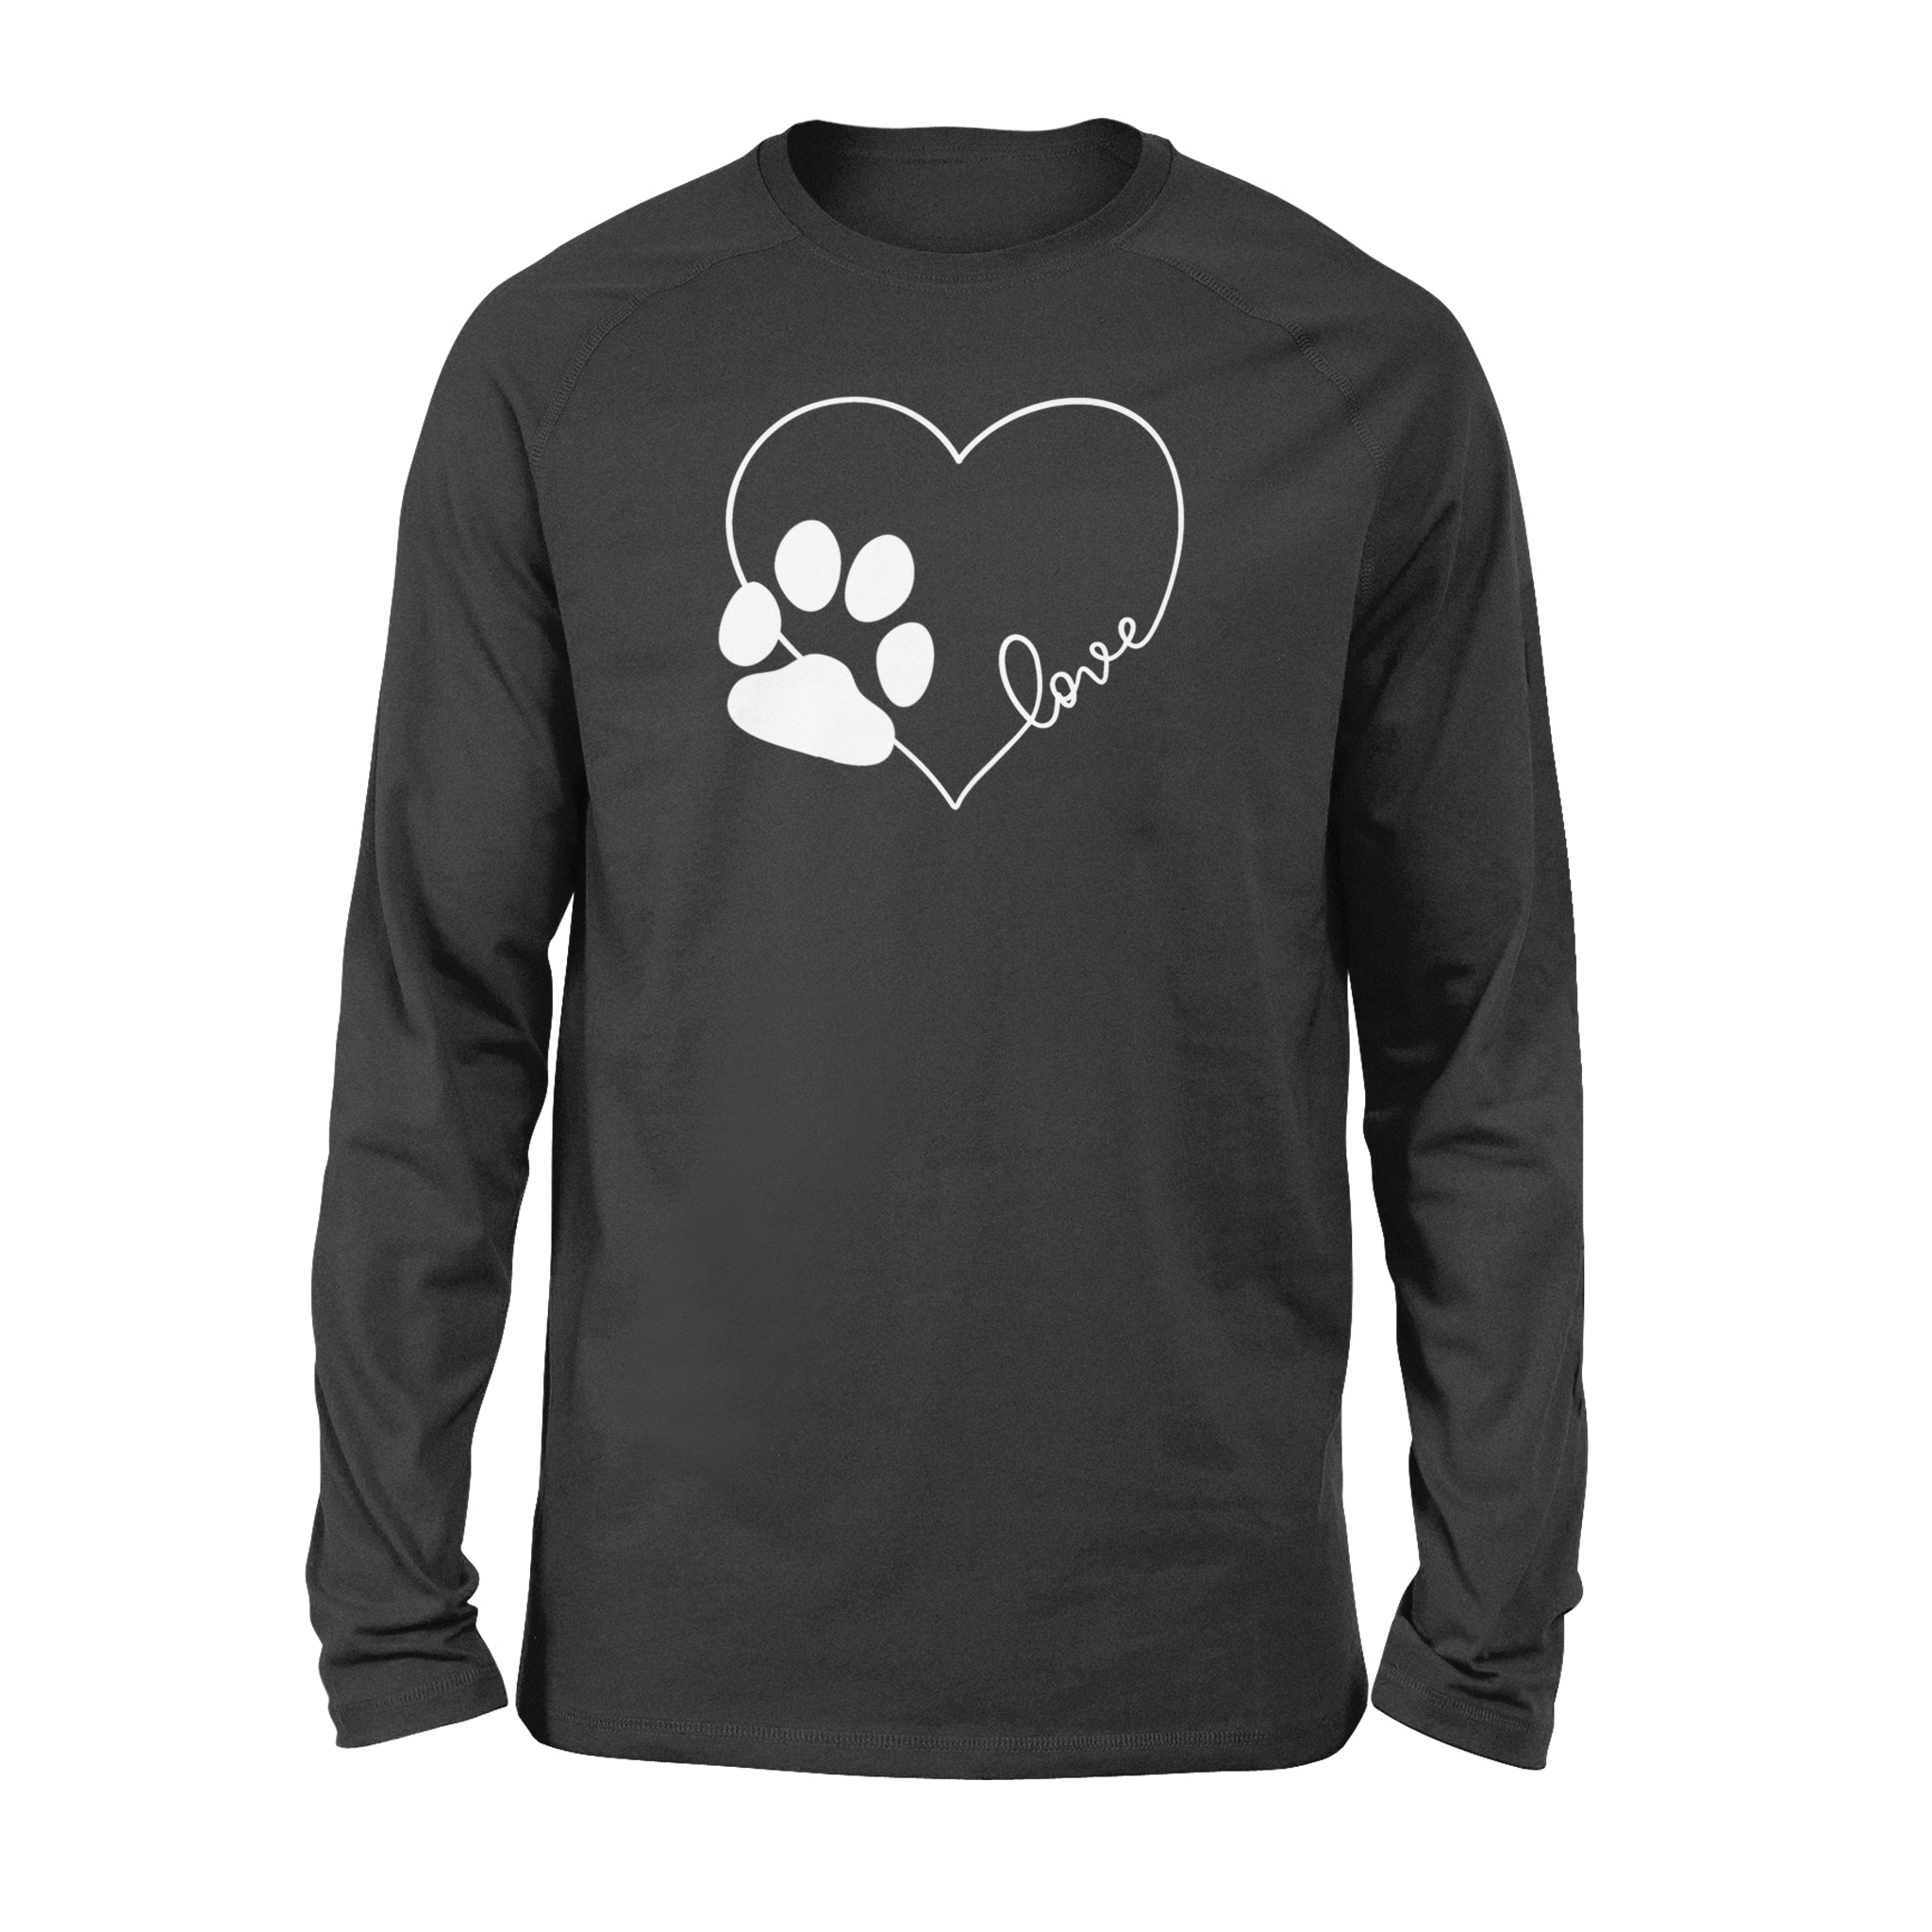 Love Dogs Cute T-shirt – Standard Long Sleeve